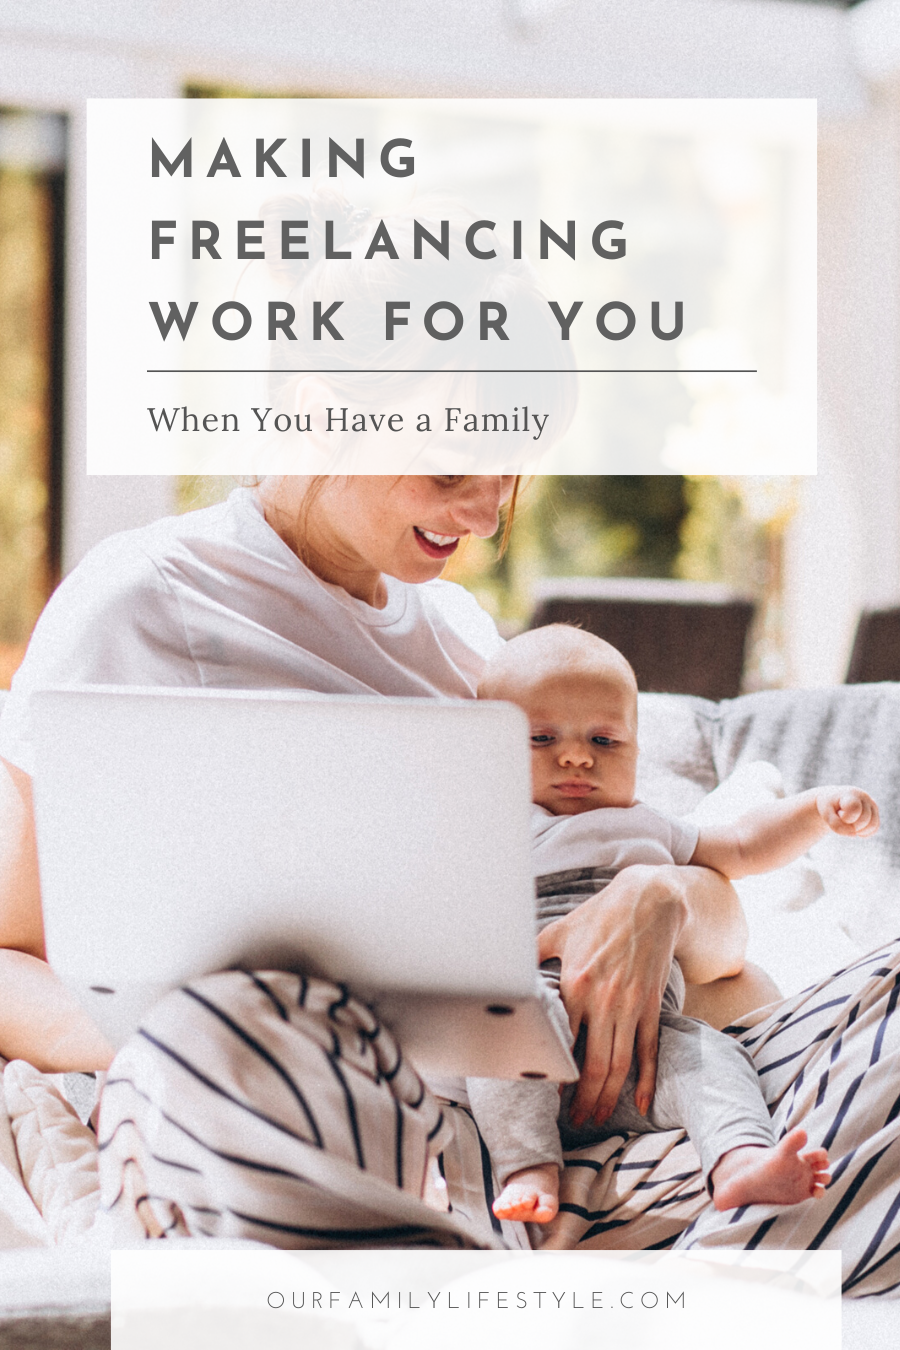 Making Freelancing Work for You When You Have a Family